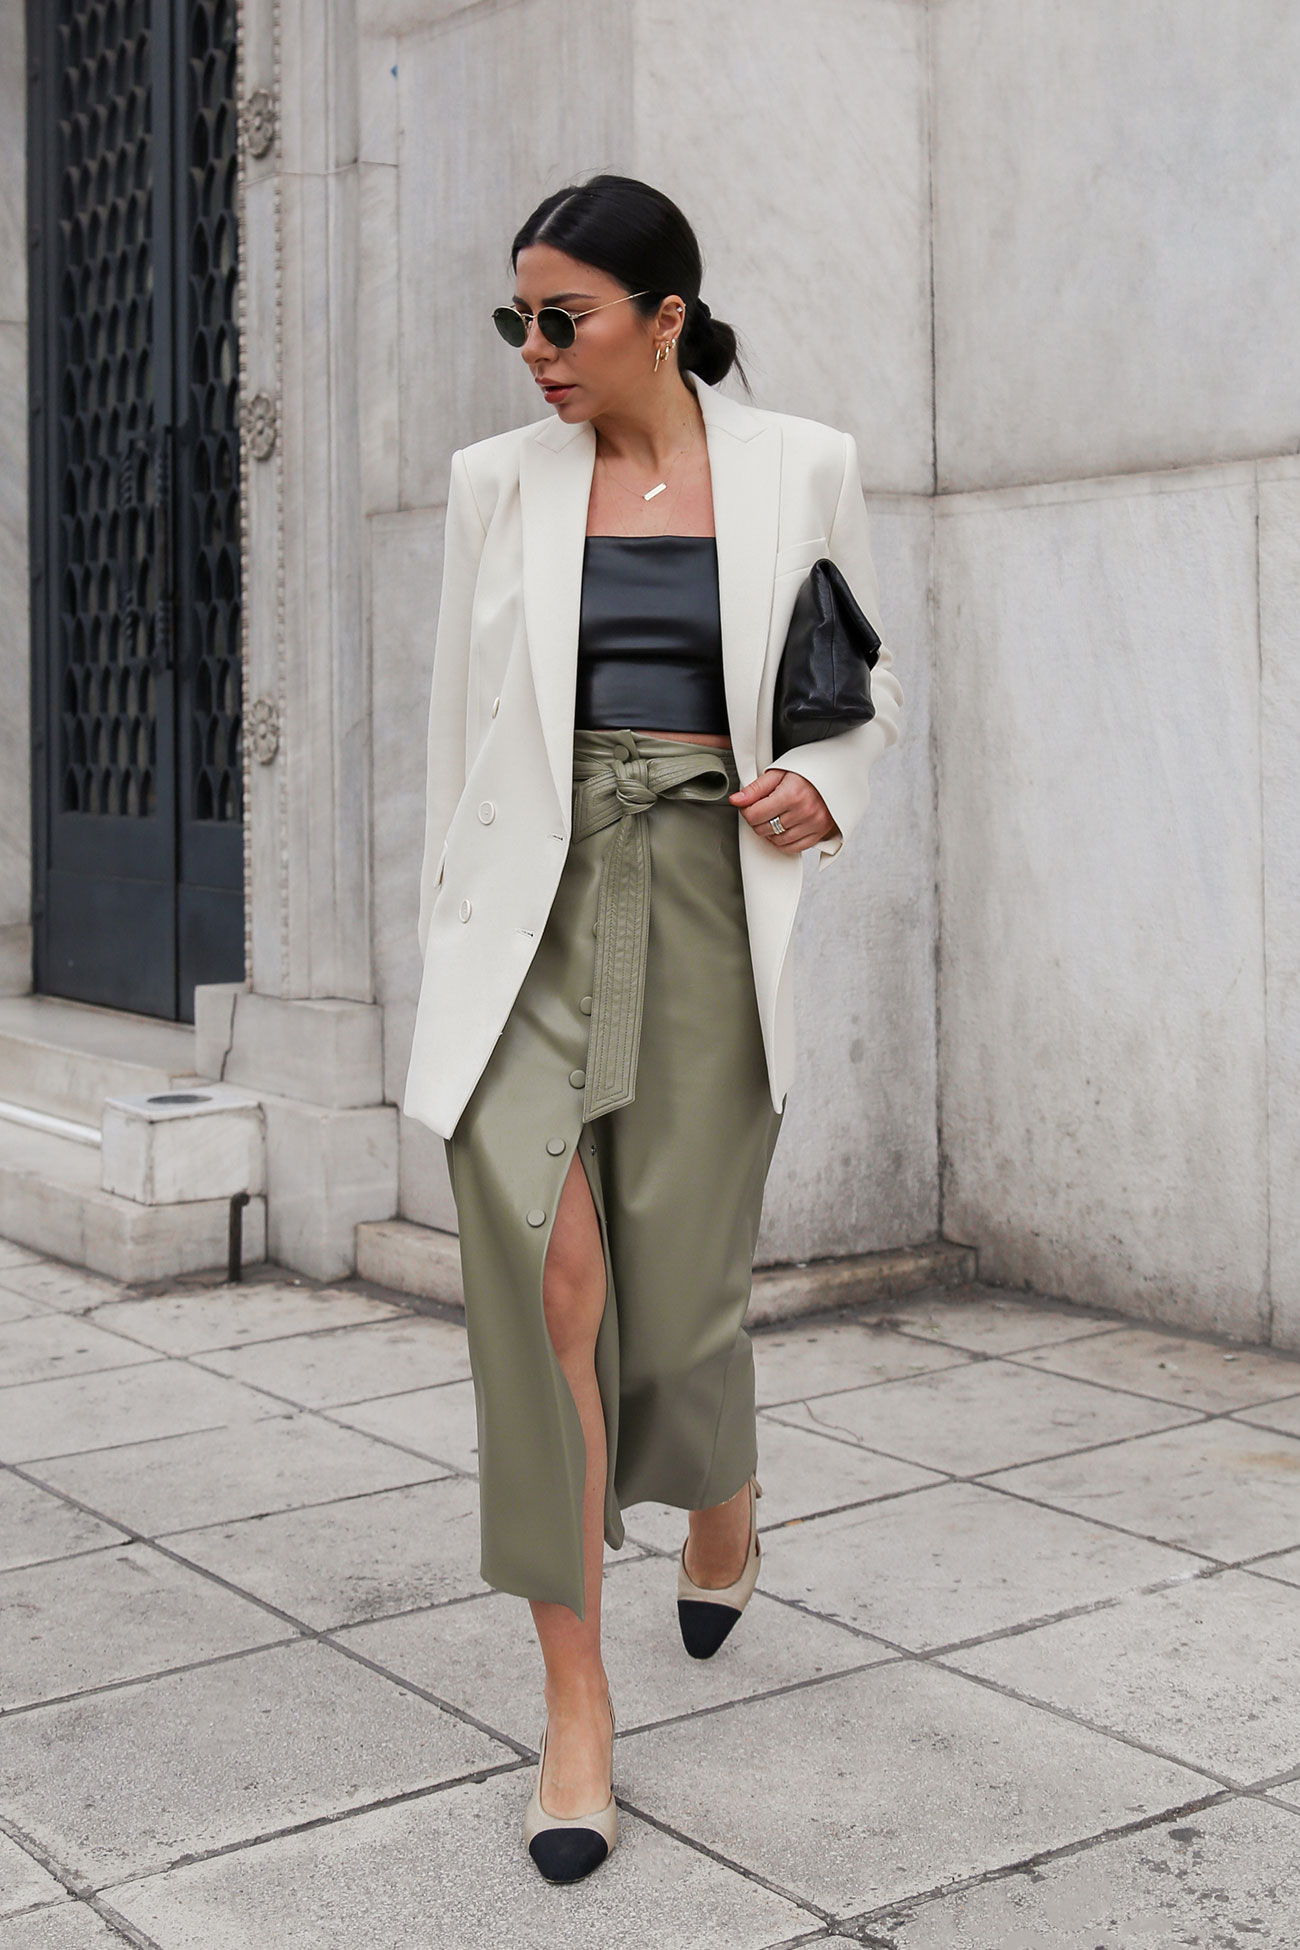 Streetstyle by Stella Asteria